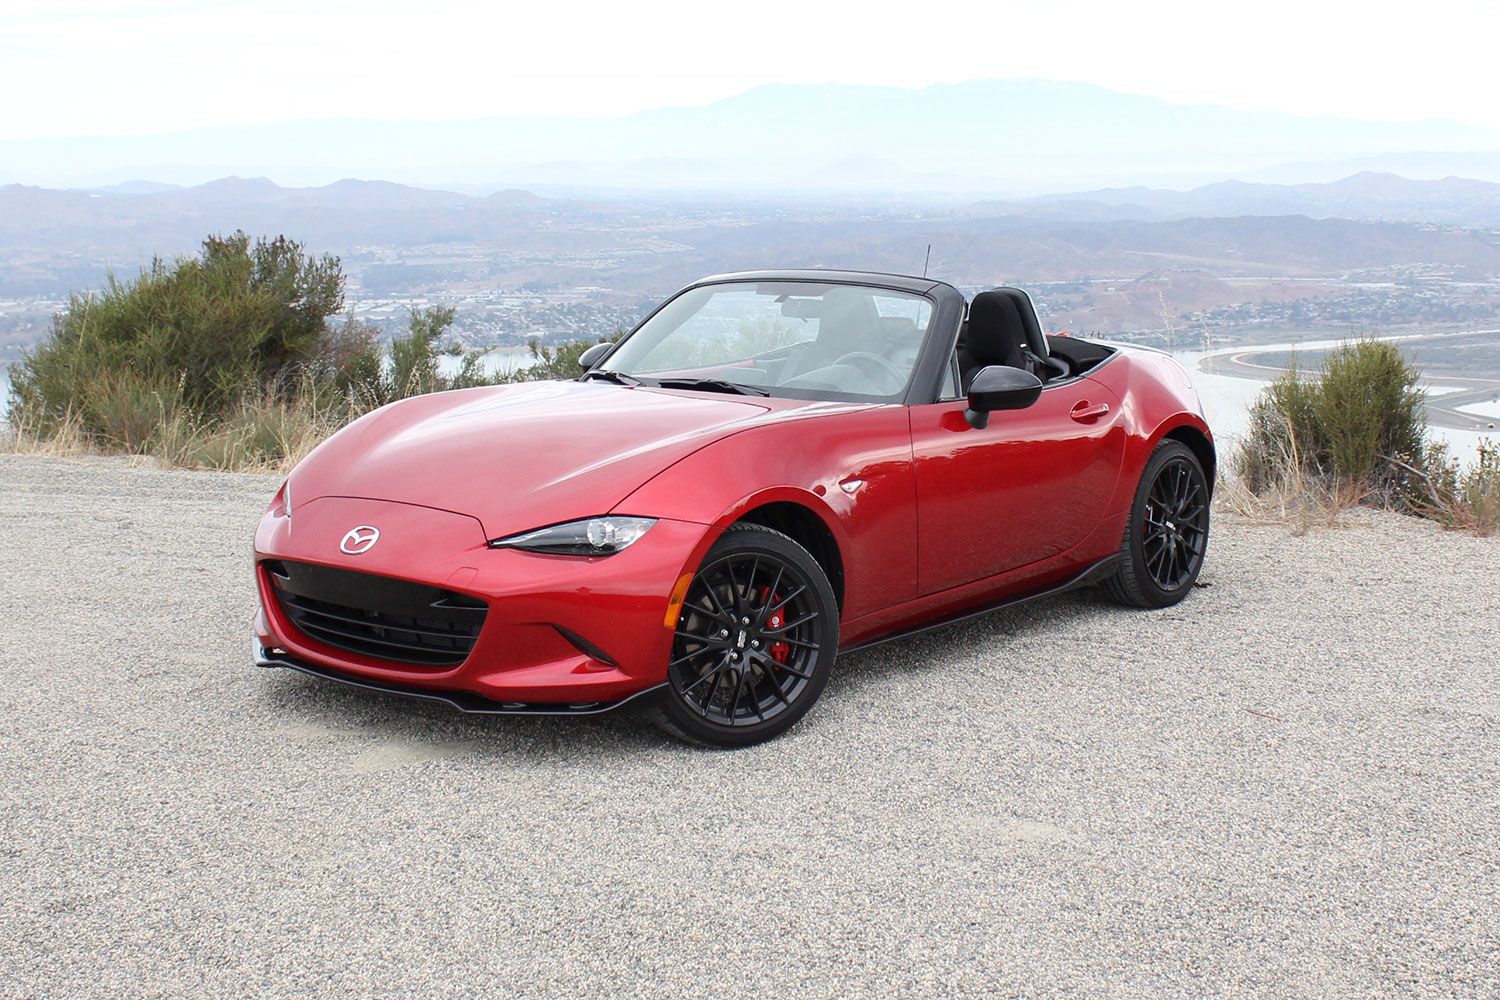 mazda will reveal a hardtop version of its new mx-5 miata in new york